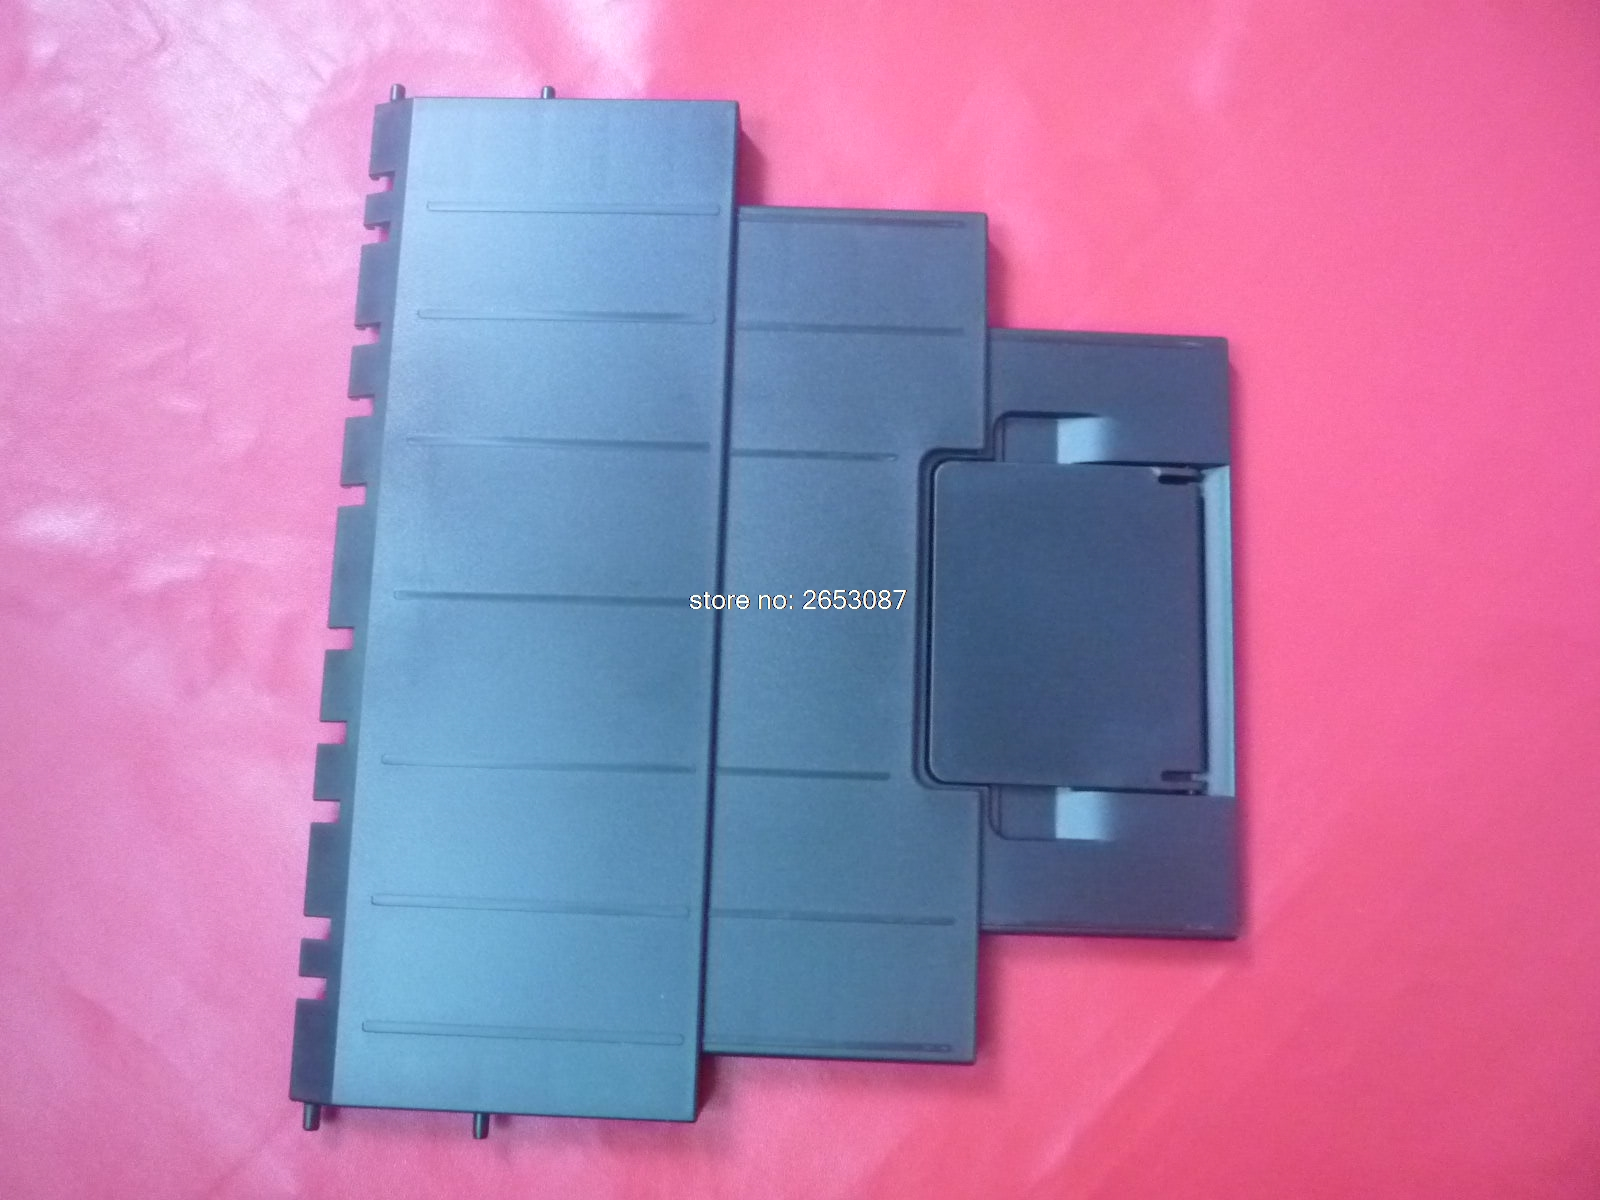 ORIGINAL paper feed tray Paper Output Tray STACKER holder assy for Epson BX635FWD/TX620FWD/DX625FWD/690FWD Paper Delivery Tray rm1 2365 feed drive board assy paper pickup pcb for hp cm4730